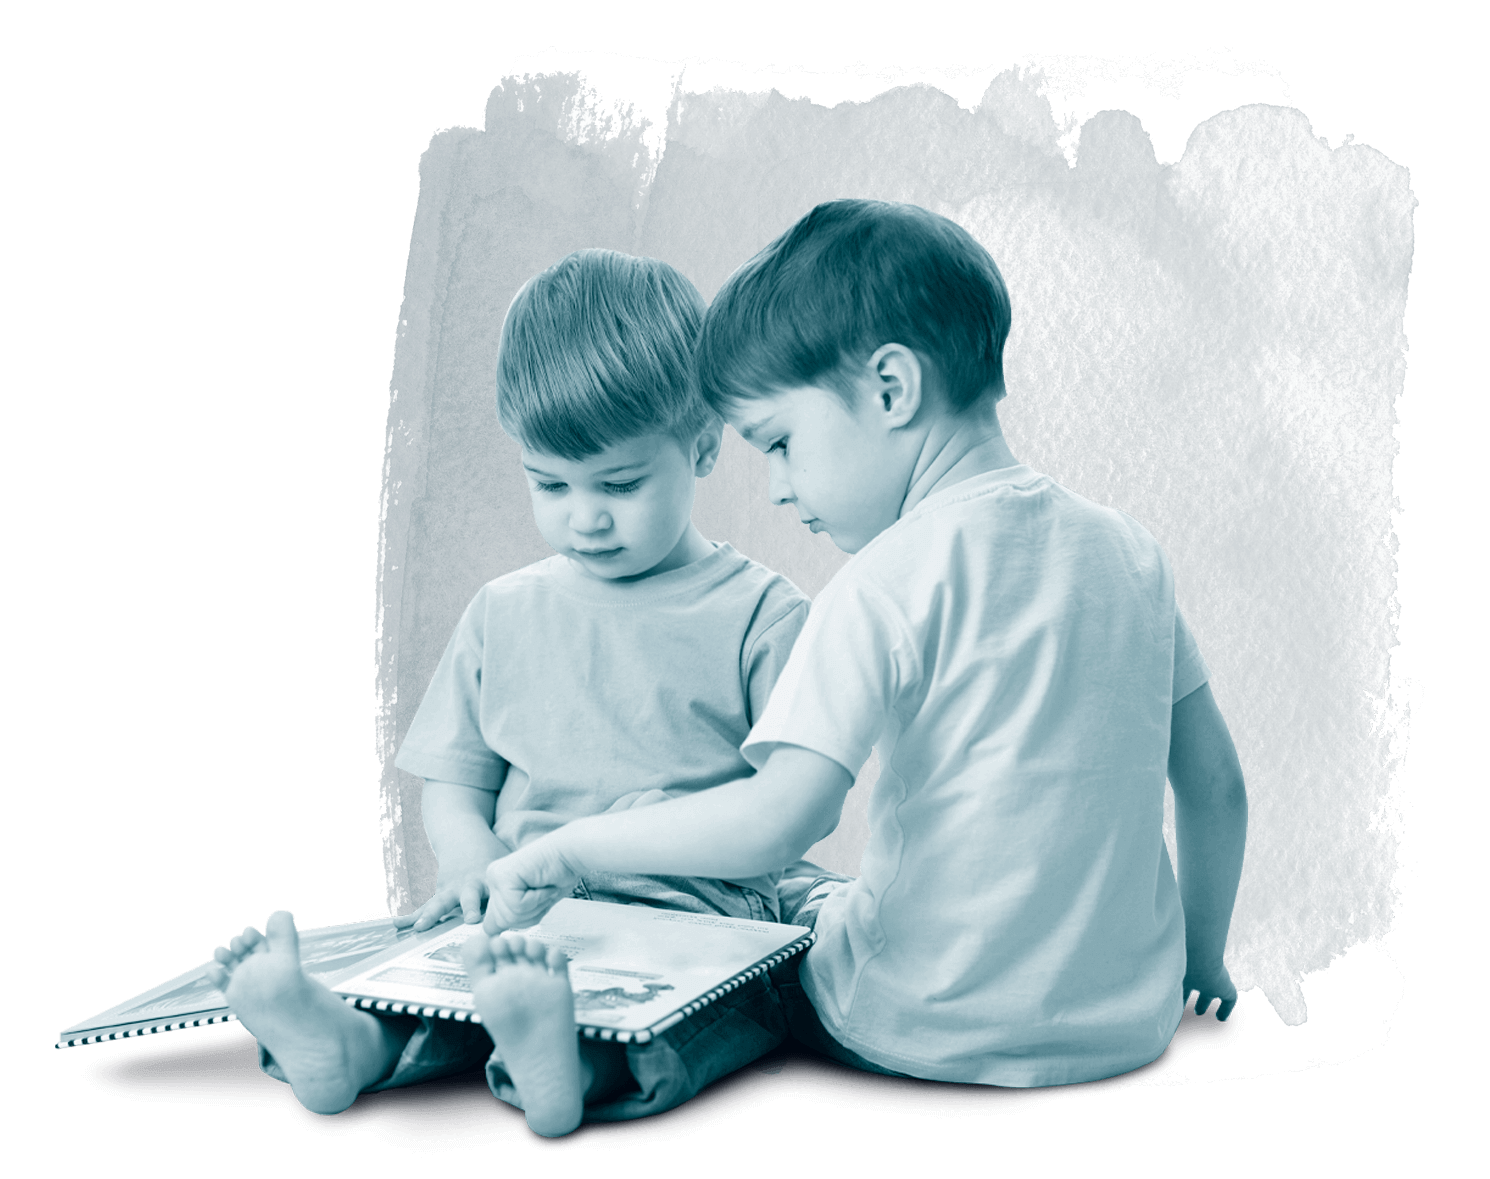 Two boys looking at a book